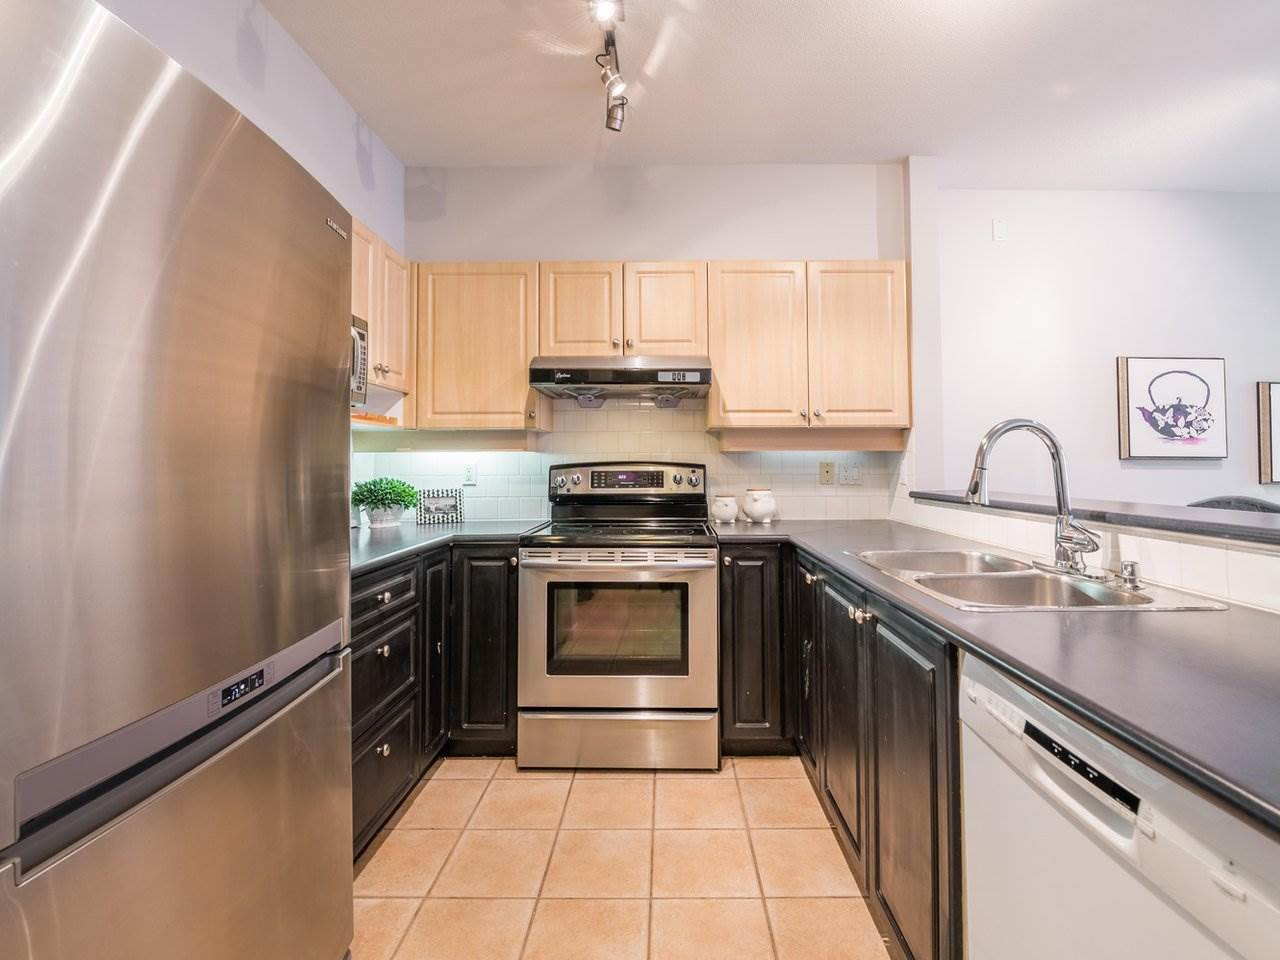 412 3629 DEERCREST DRIVE - Roche Point Apartment/Condo for sale, 1 Bedroom (R2525424) - #7